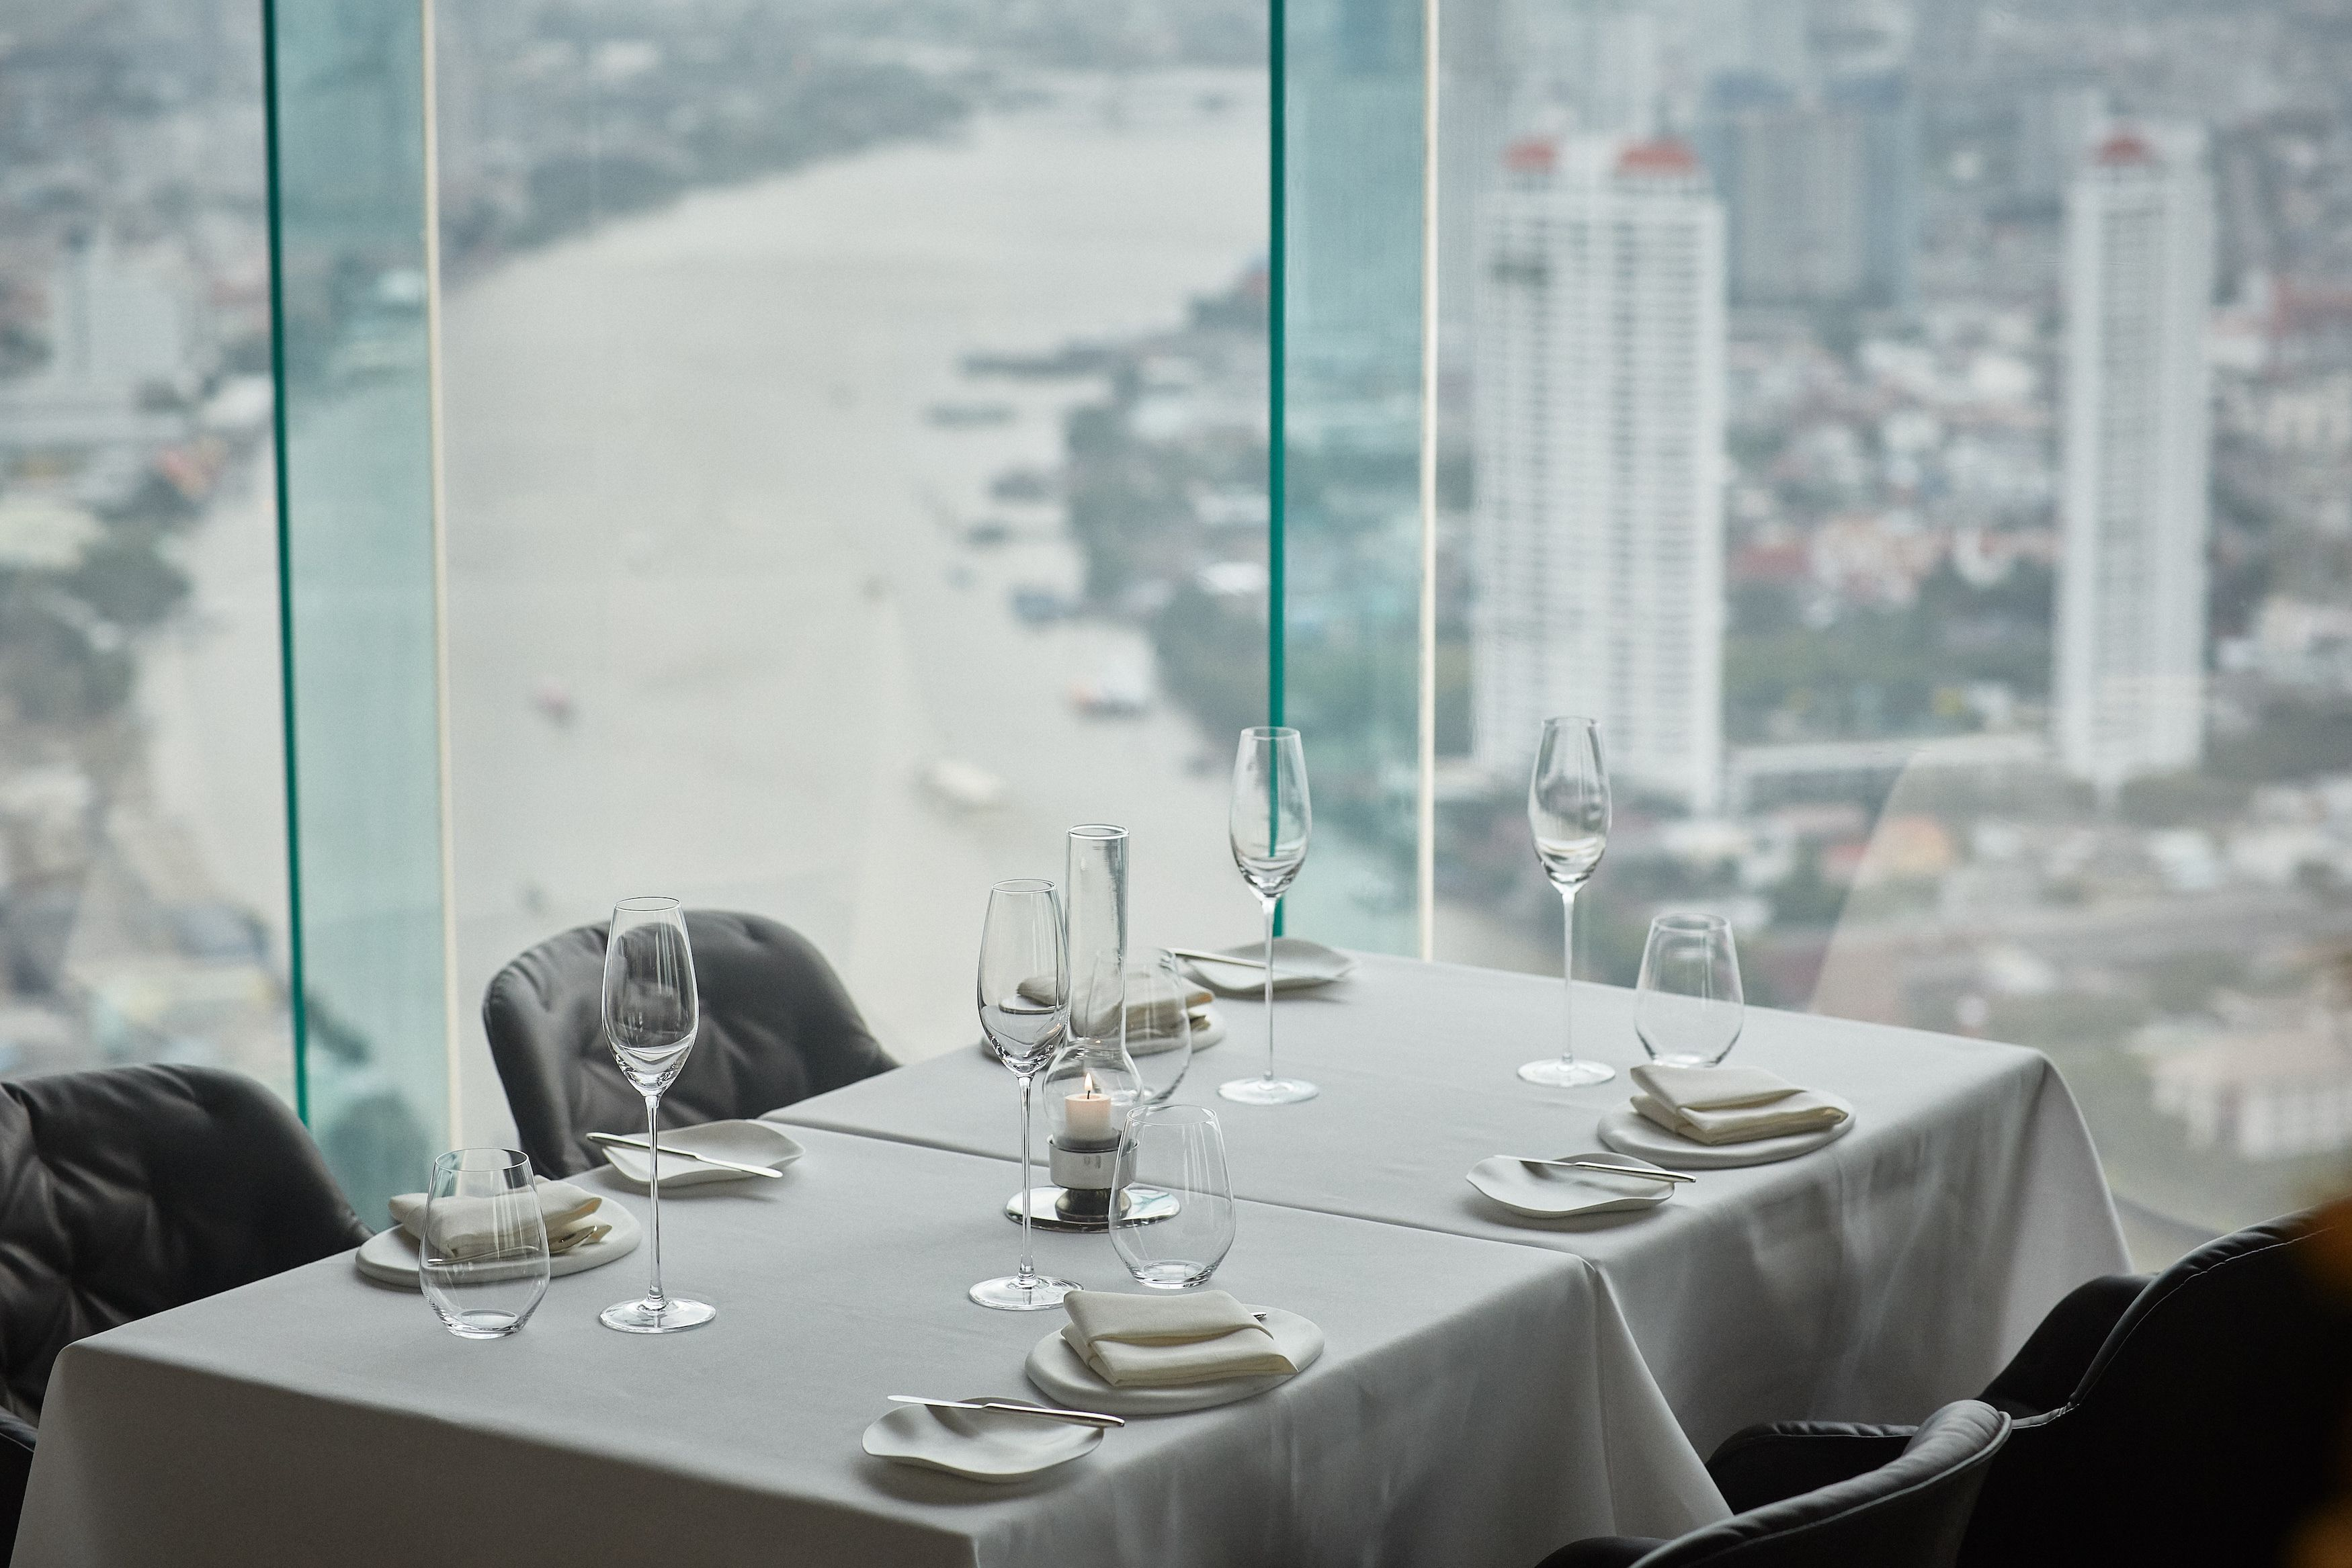 restaurant table by window set with white linens with silver wear and glasses grey chairs